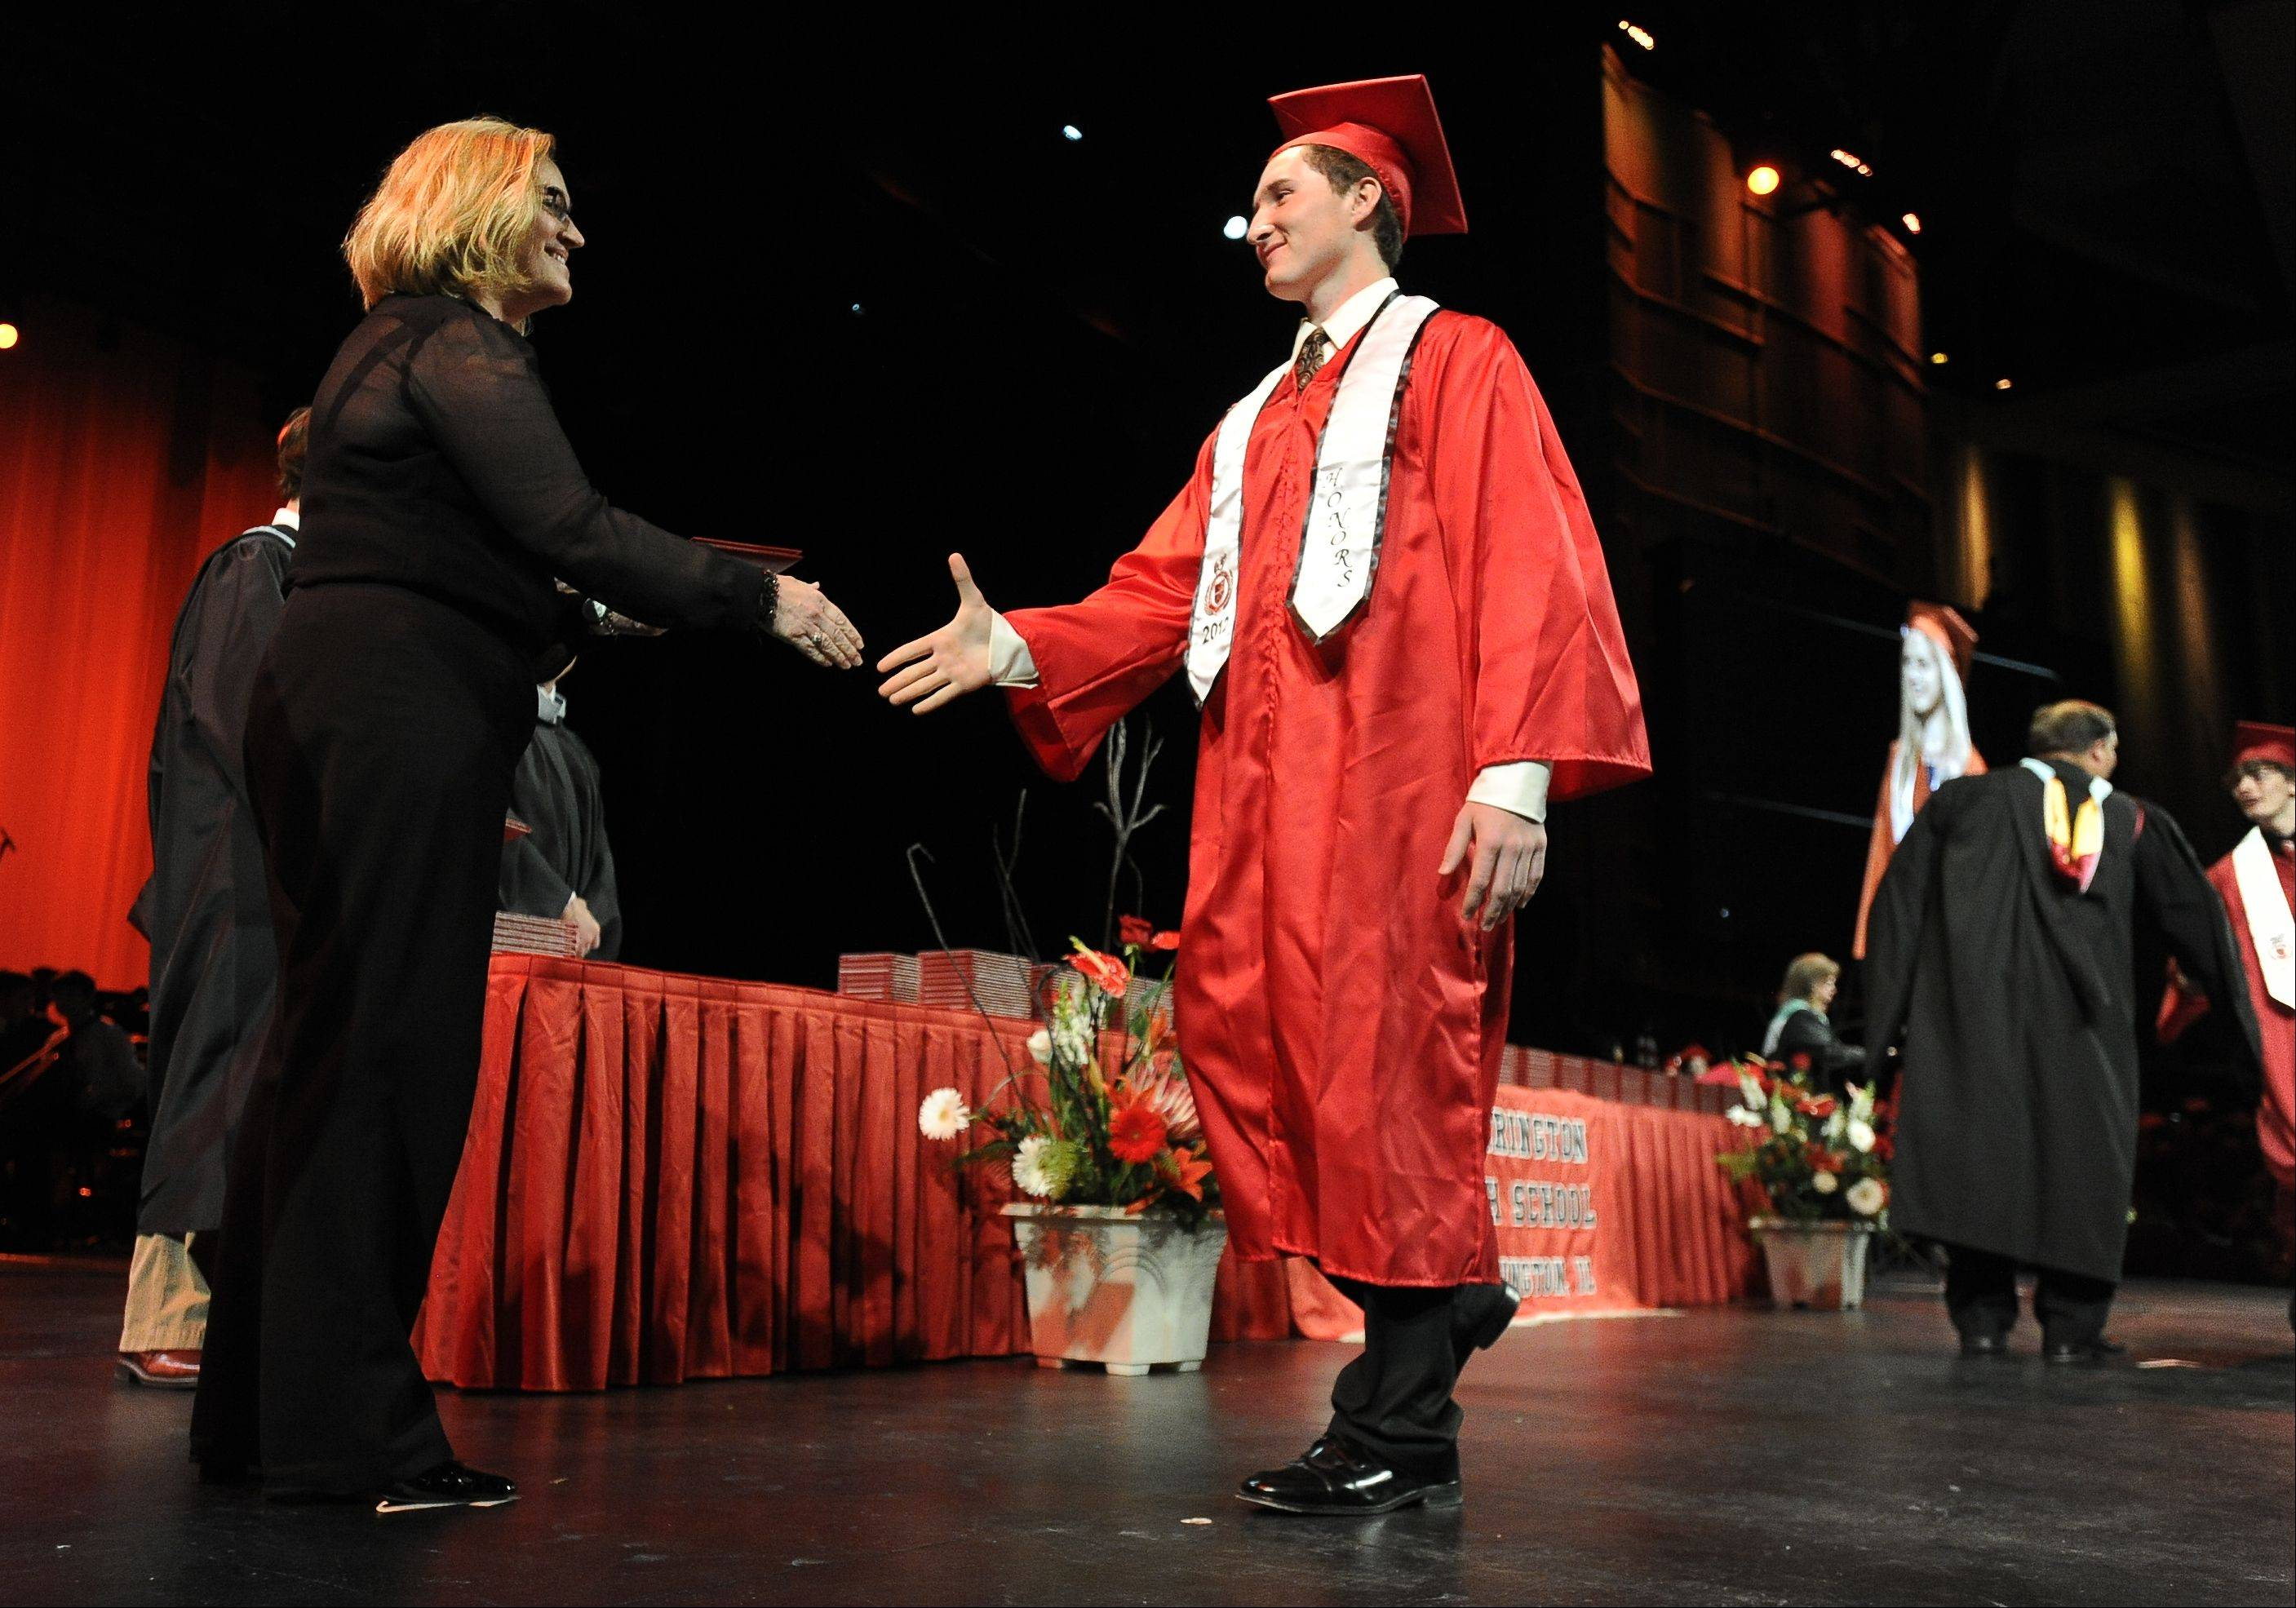 Images from the Barrington High School graduation on Friday, June 1st, at Willow Creek Church in Barrington.